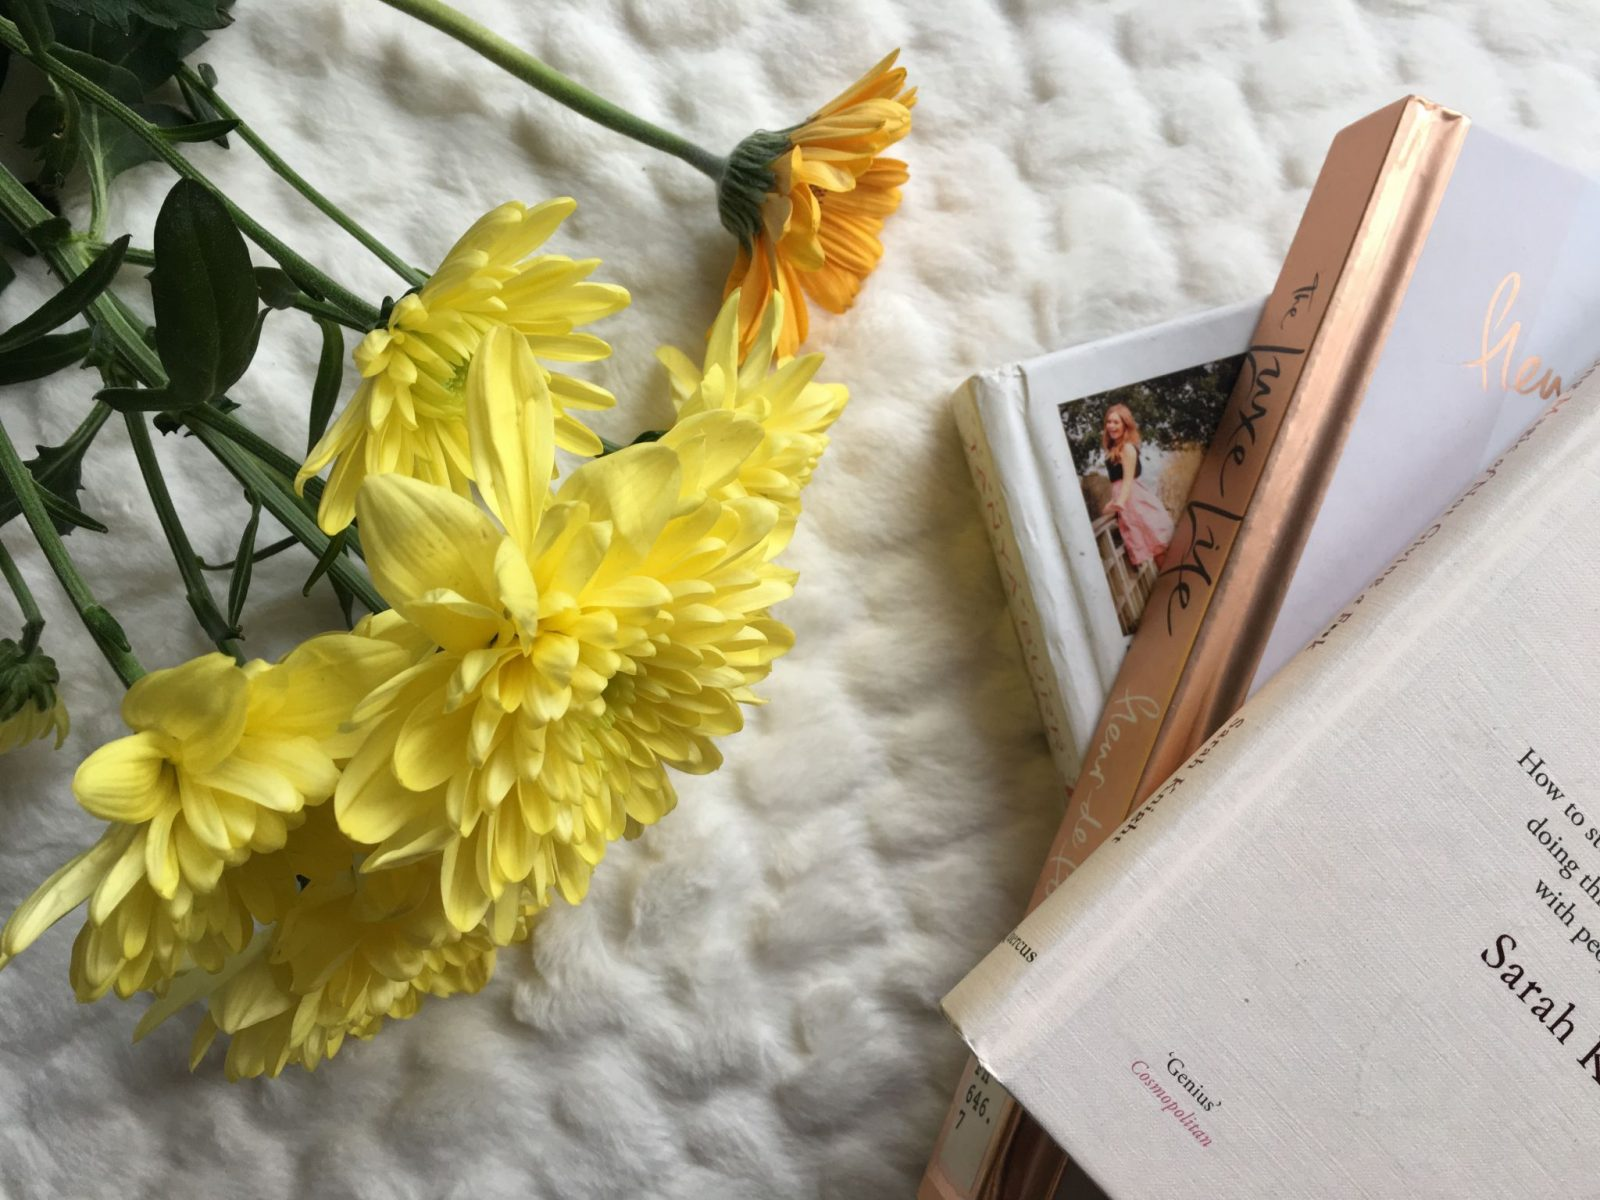 Flat lay blogger Twenty-Something City being kinder to yourself